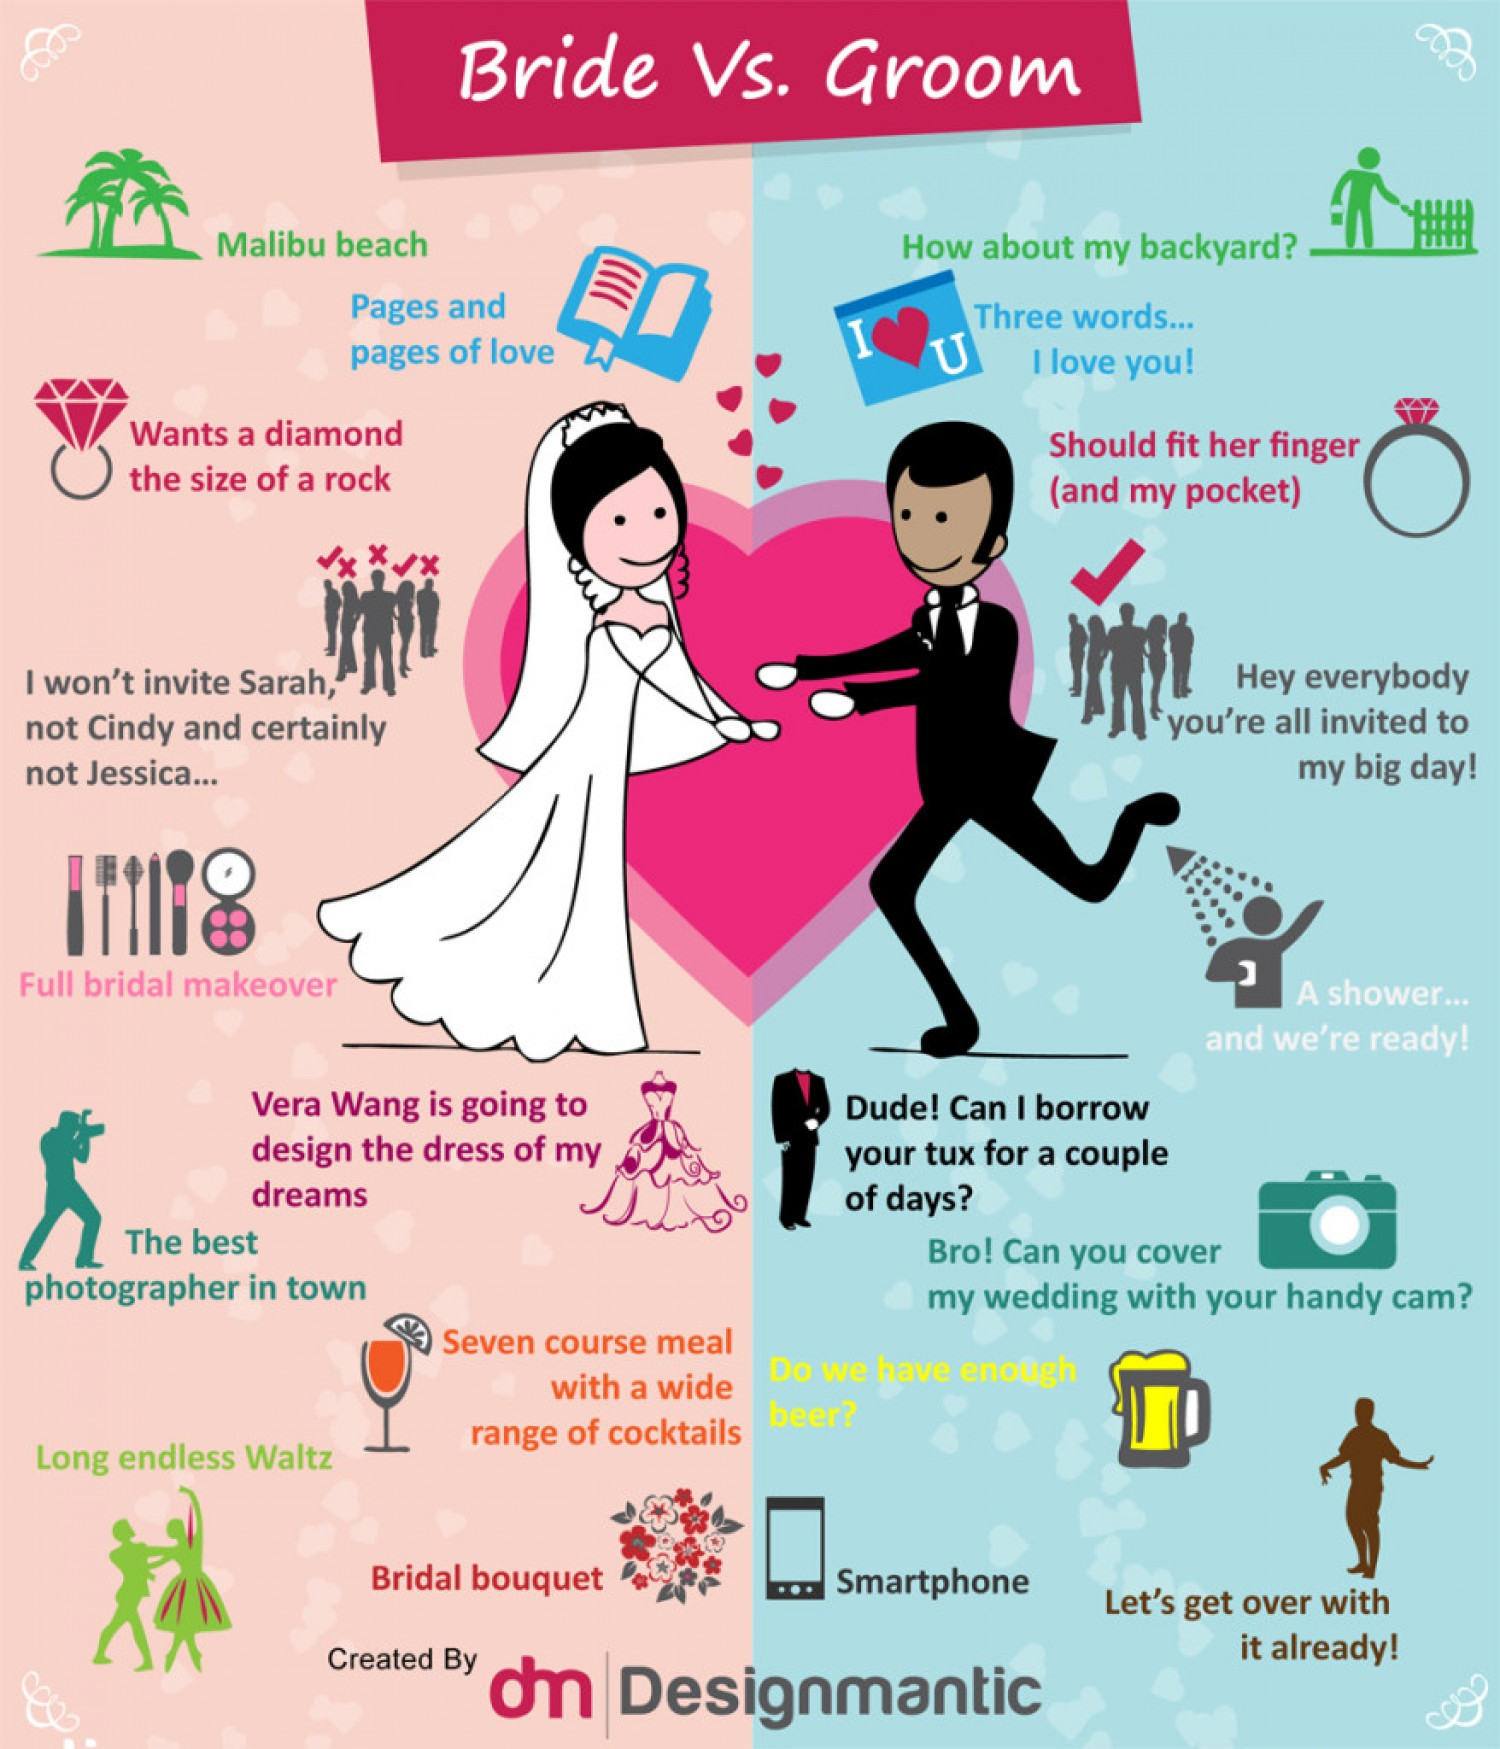 06 infographic-bride-vs-groom-what-unites-them-on-wedding_53302ac347406_w1500